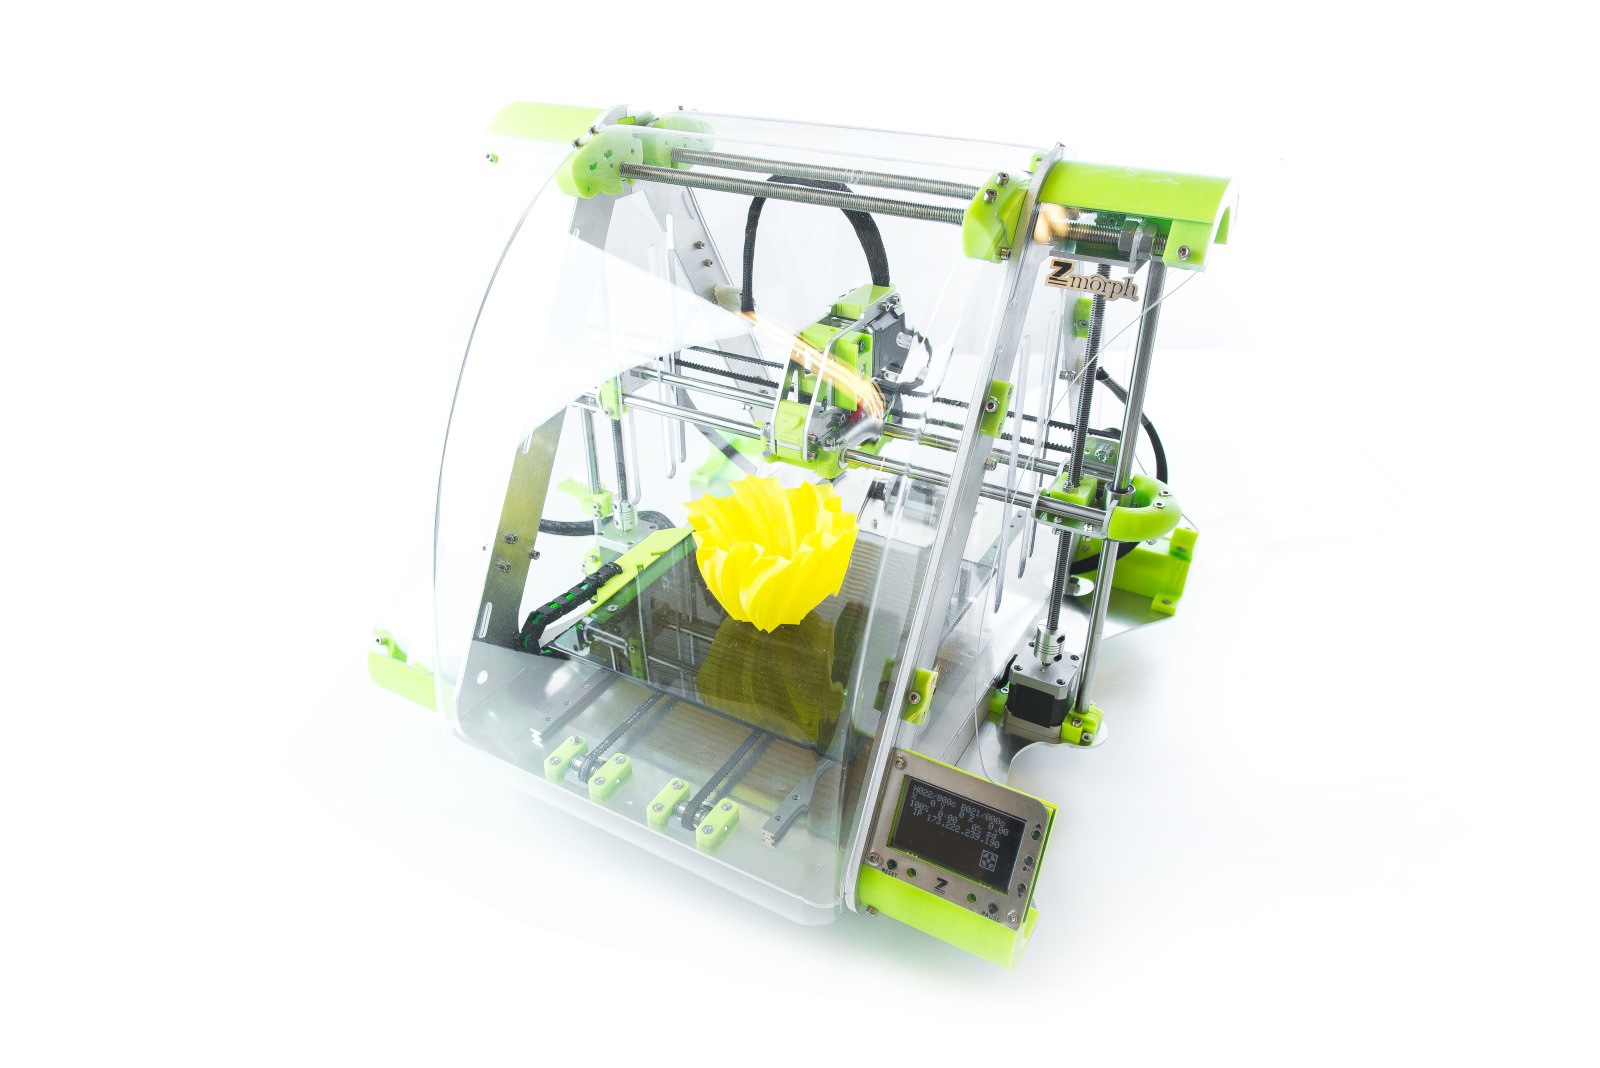 ZMorph green 3d printer